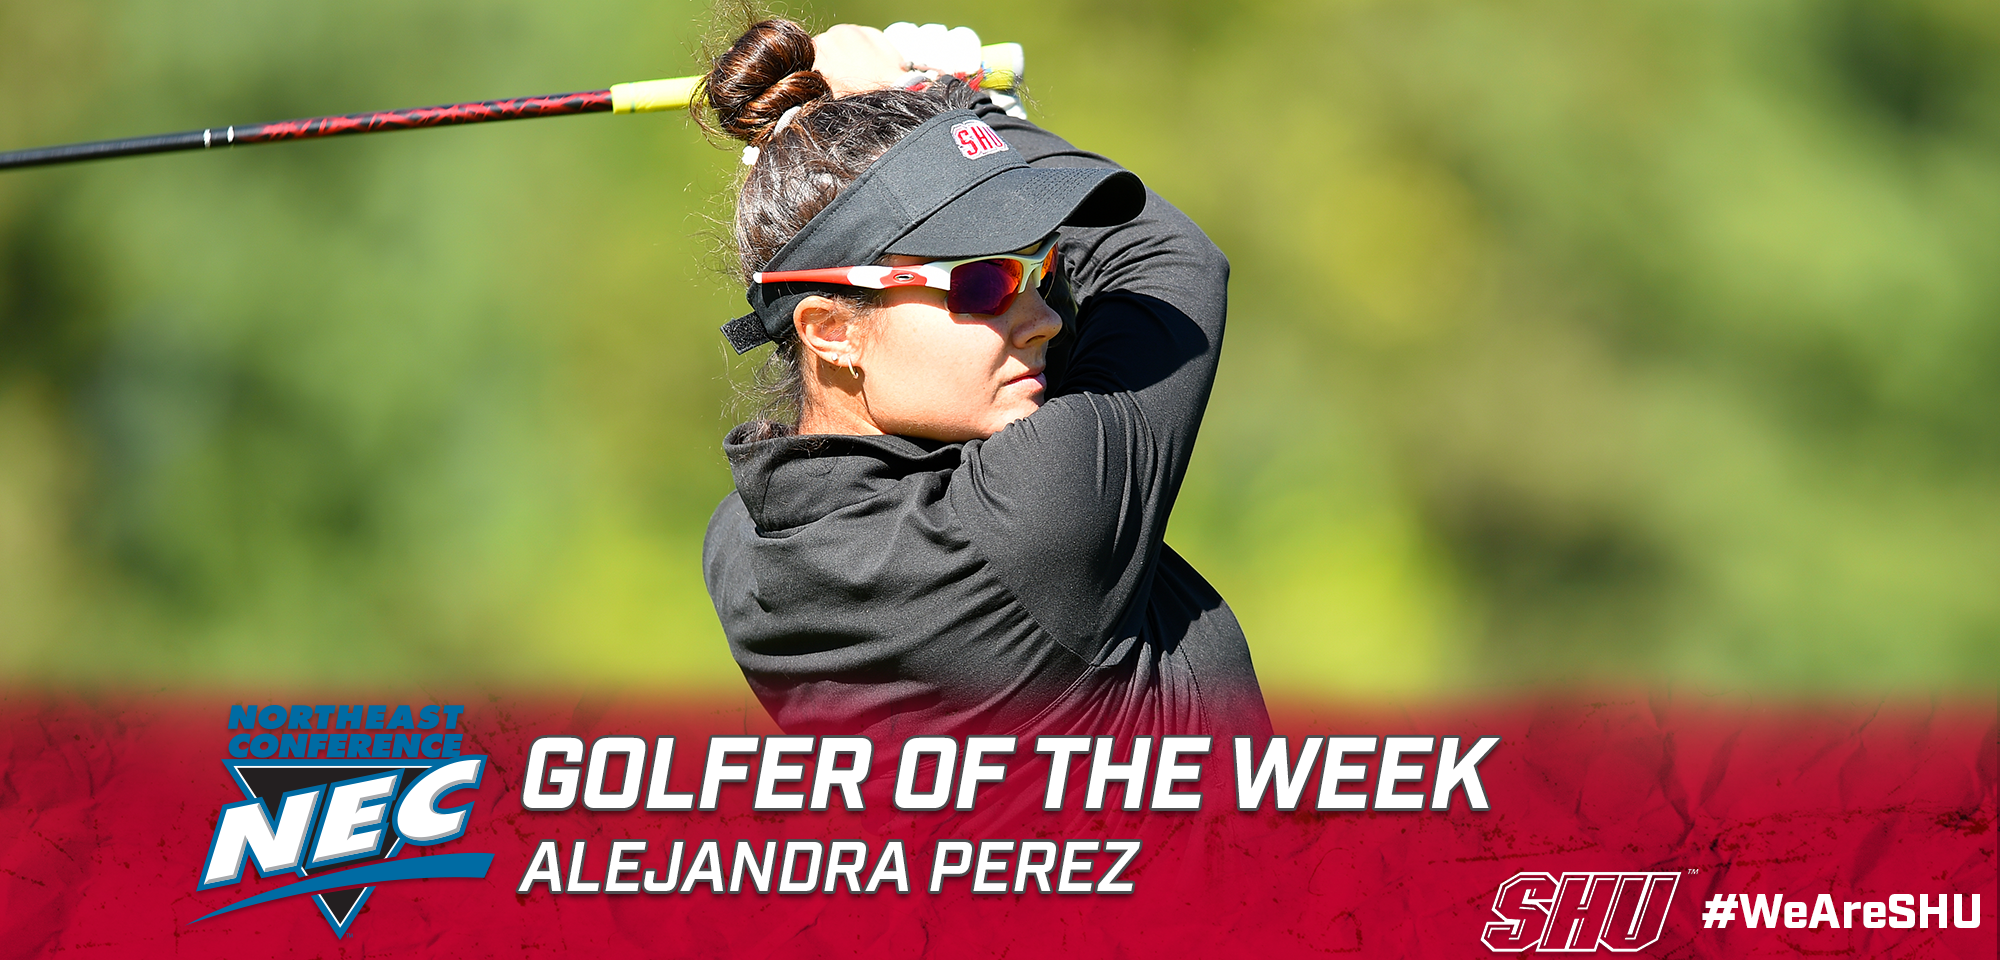 Perez earns NEC Golfer of the Week